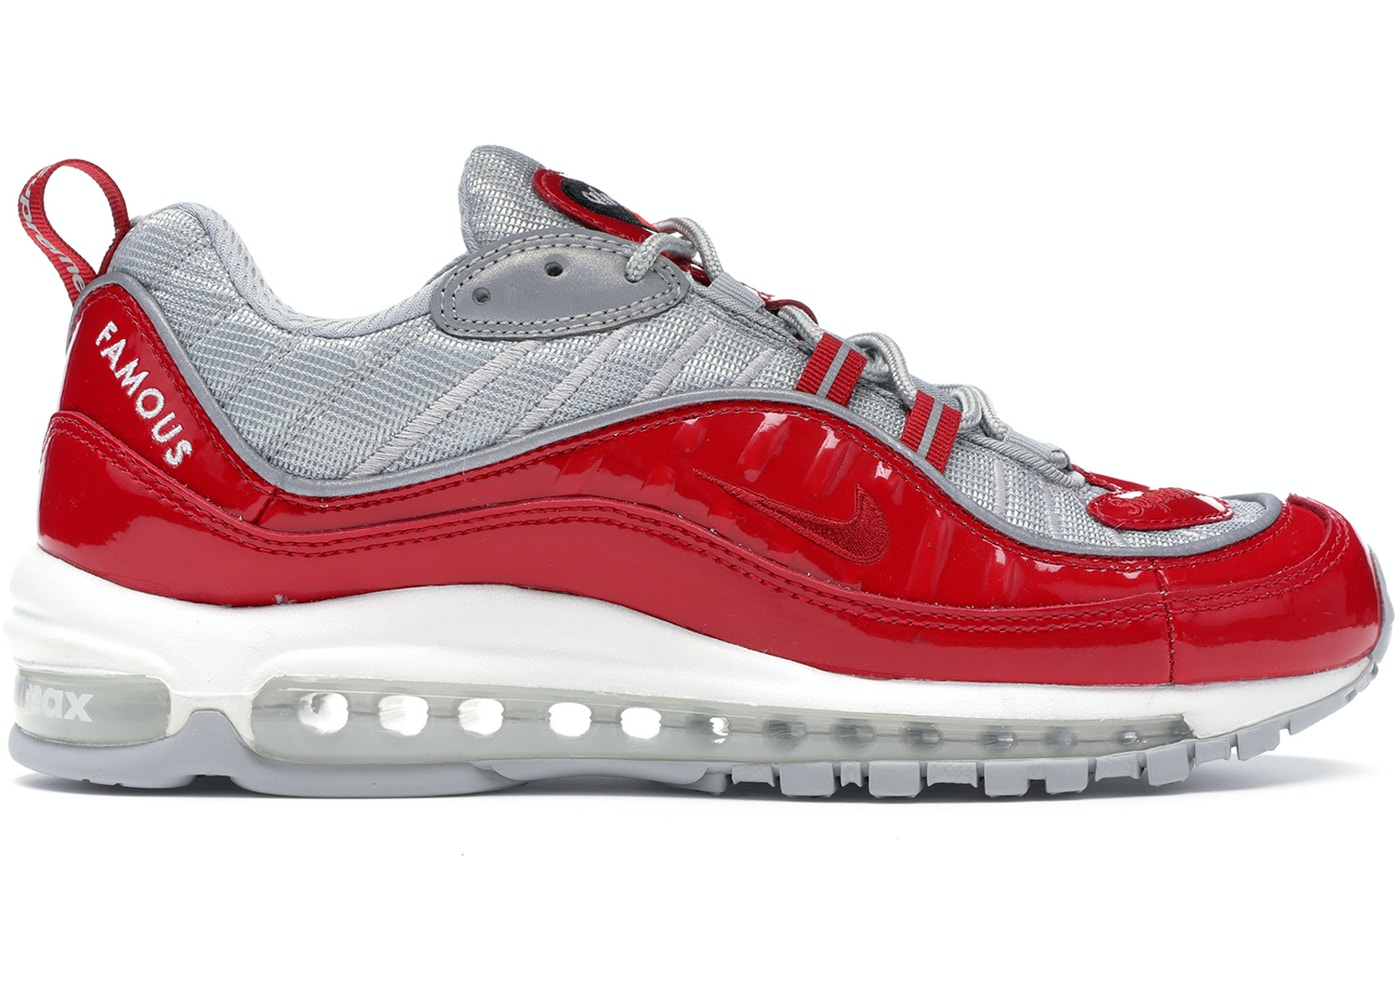 promo code 699b3 d965f Air Max 98 Supreme Varsity Red